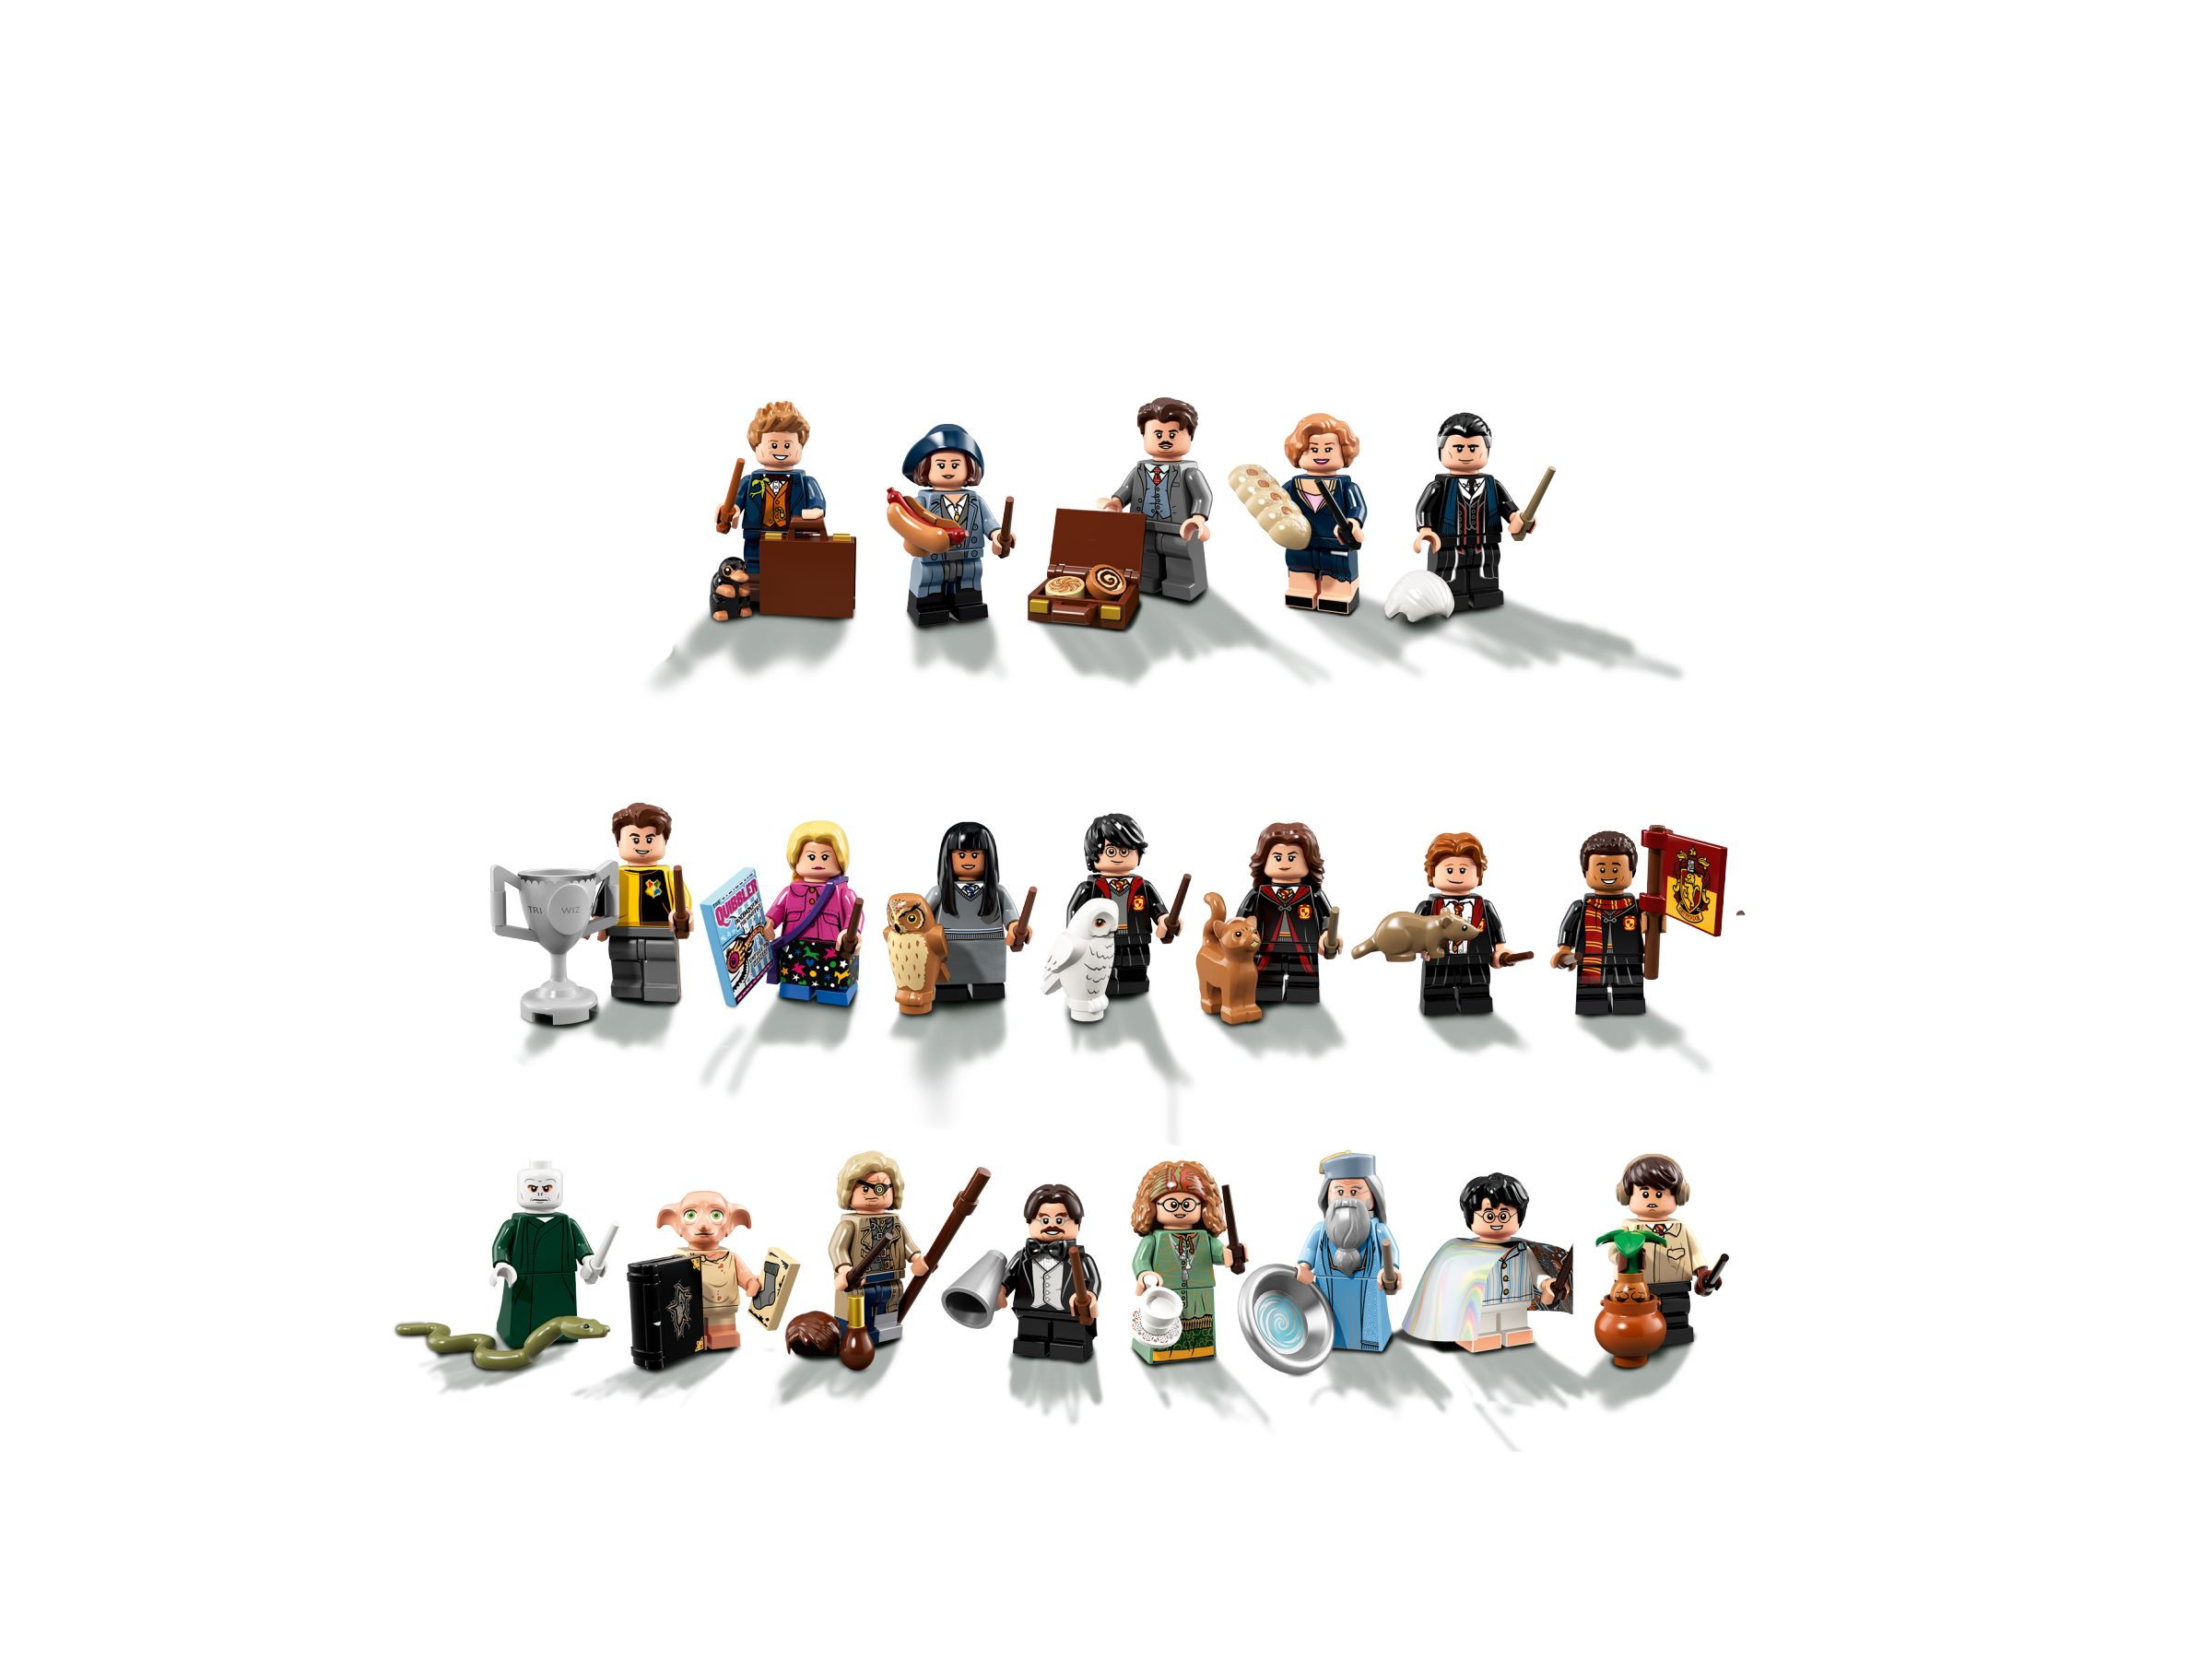 LEGO Collectable Minifigures 71022 Harry Potter Minifiguren Serie 1 - 60er Box LEGO_71022_alt2.jpg